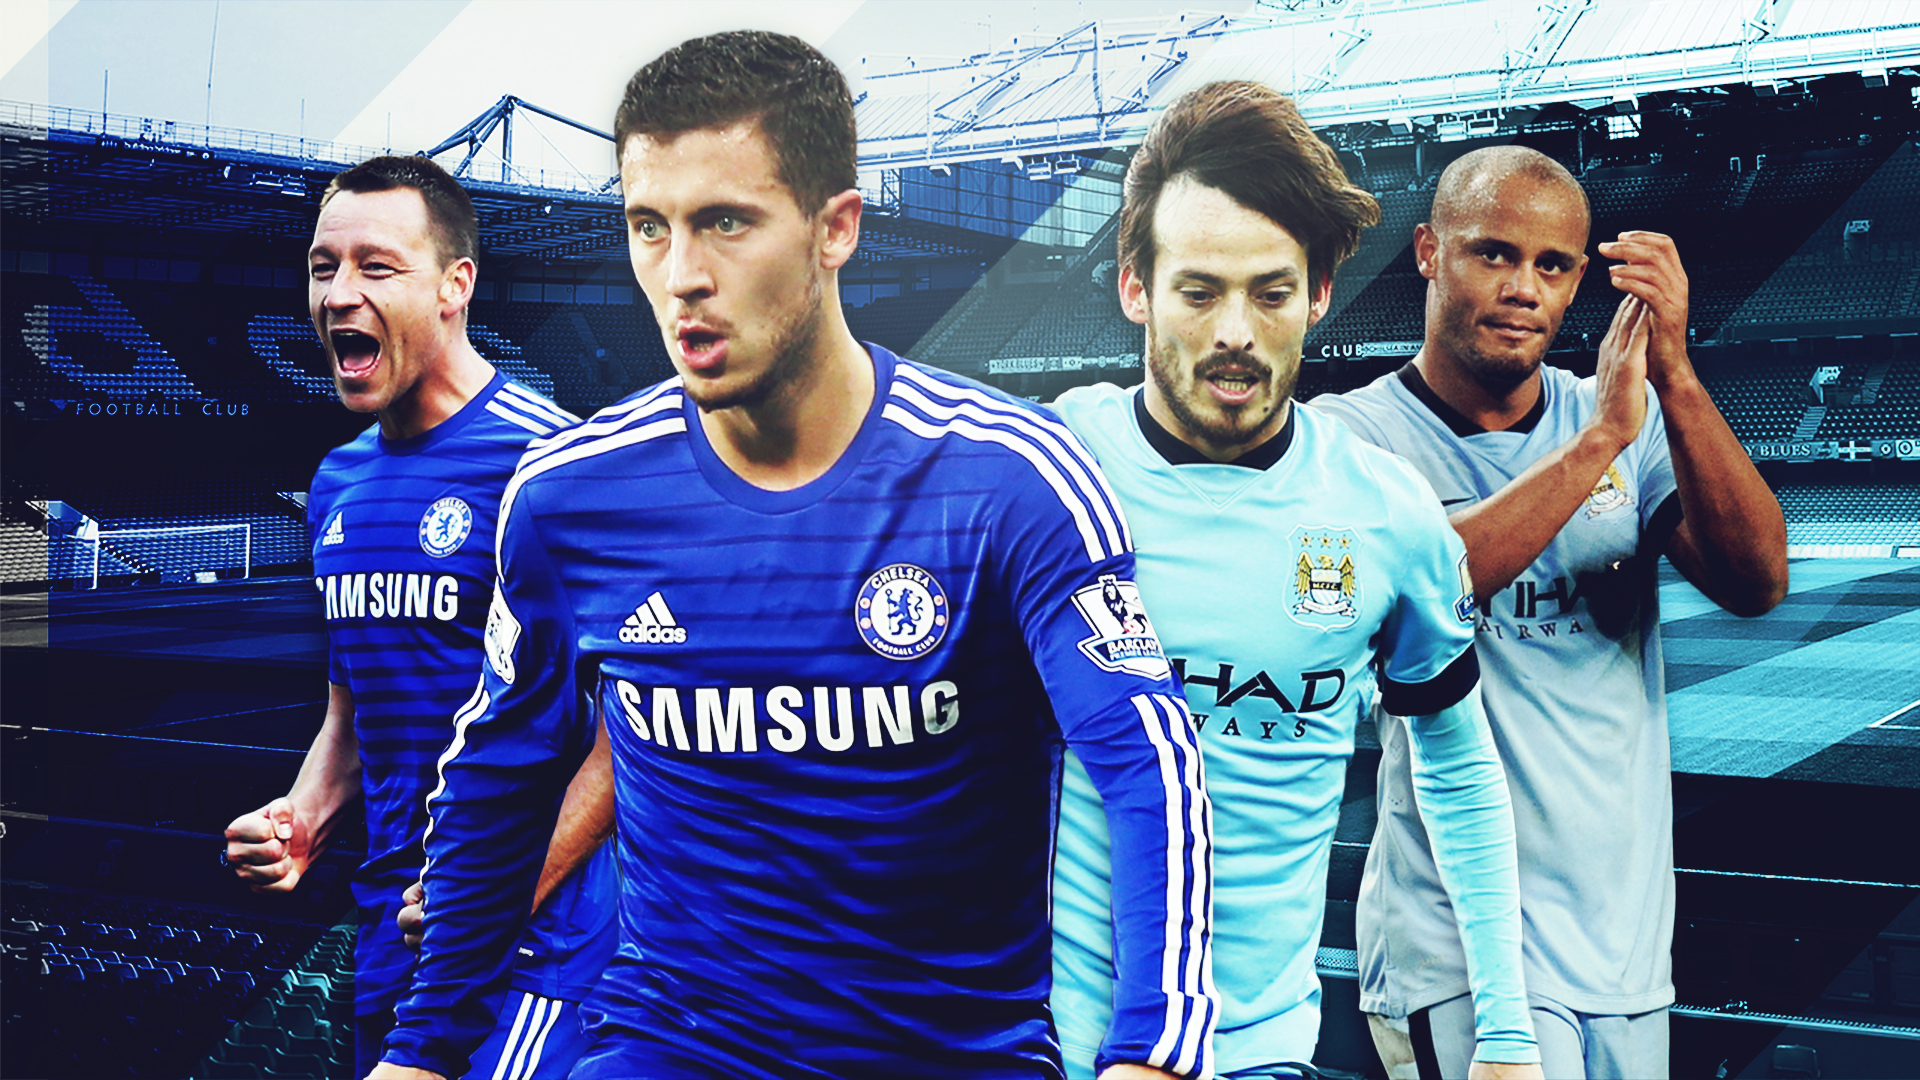 City Chelsea: Chelsea Vs Manchester City Head To Head, April 16, 2016